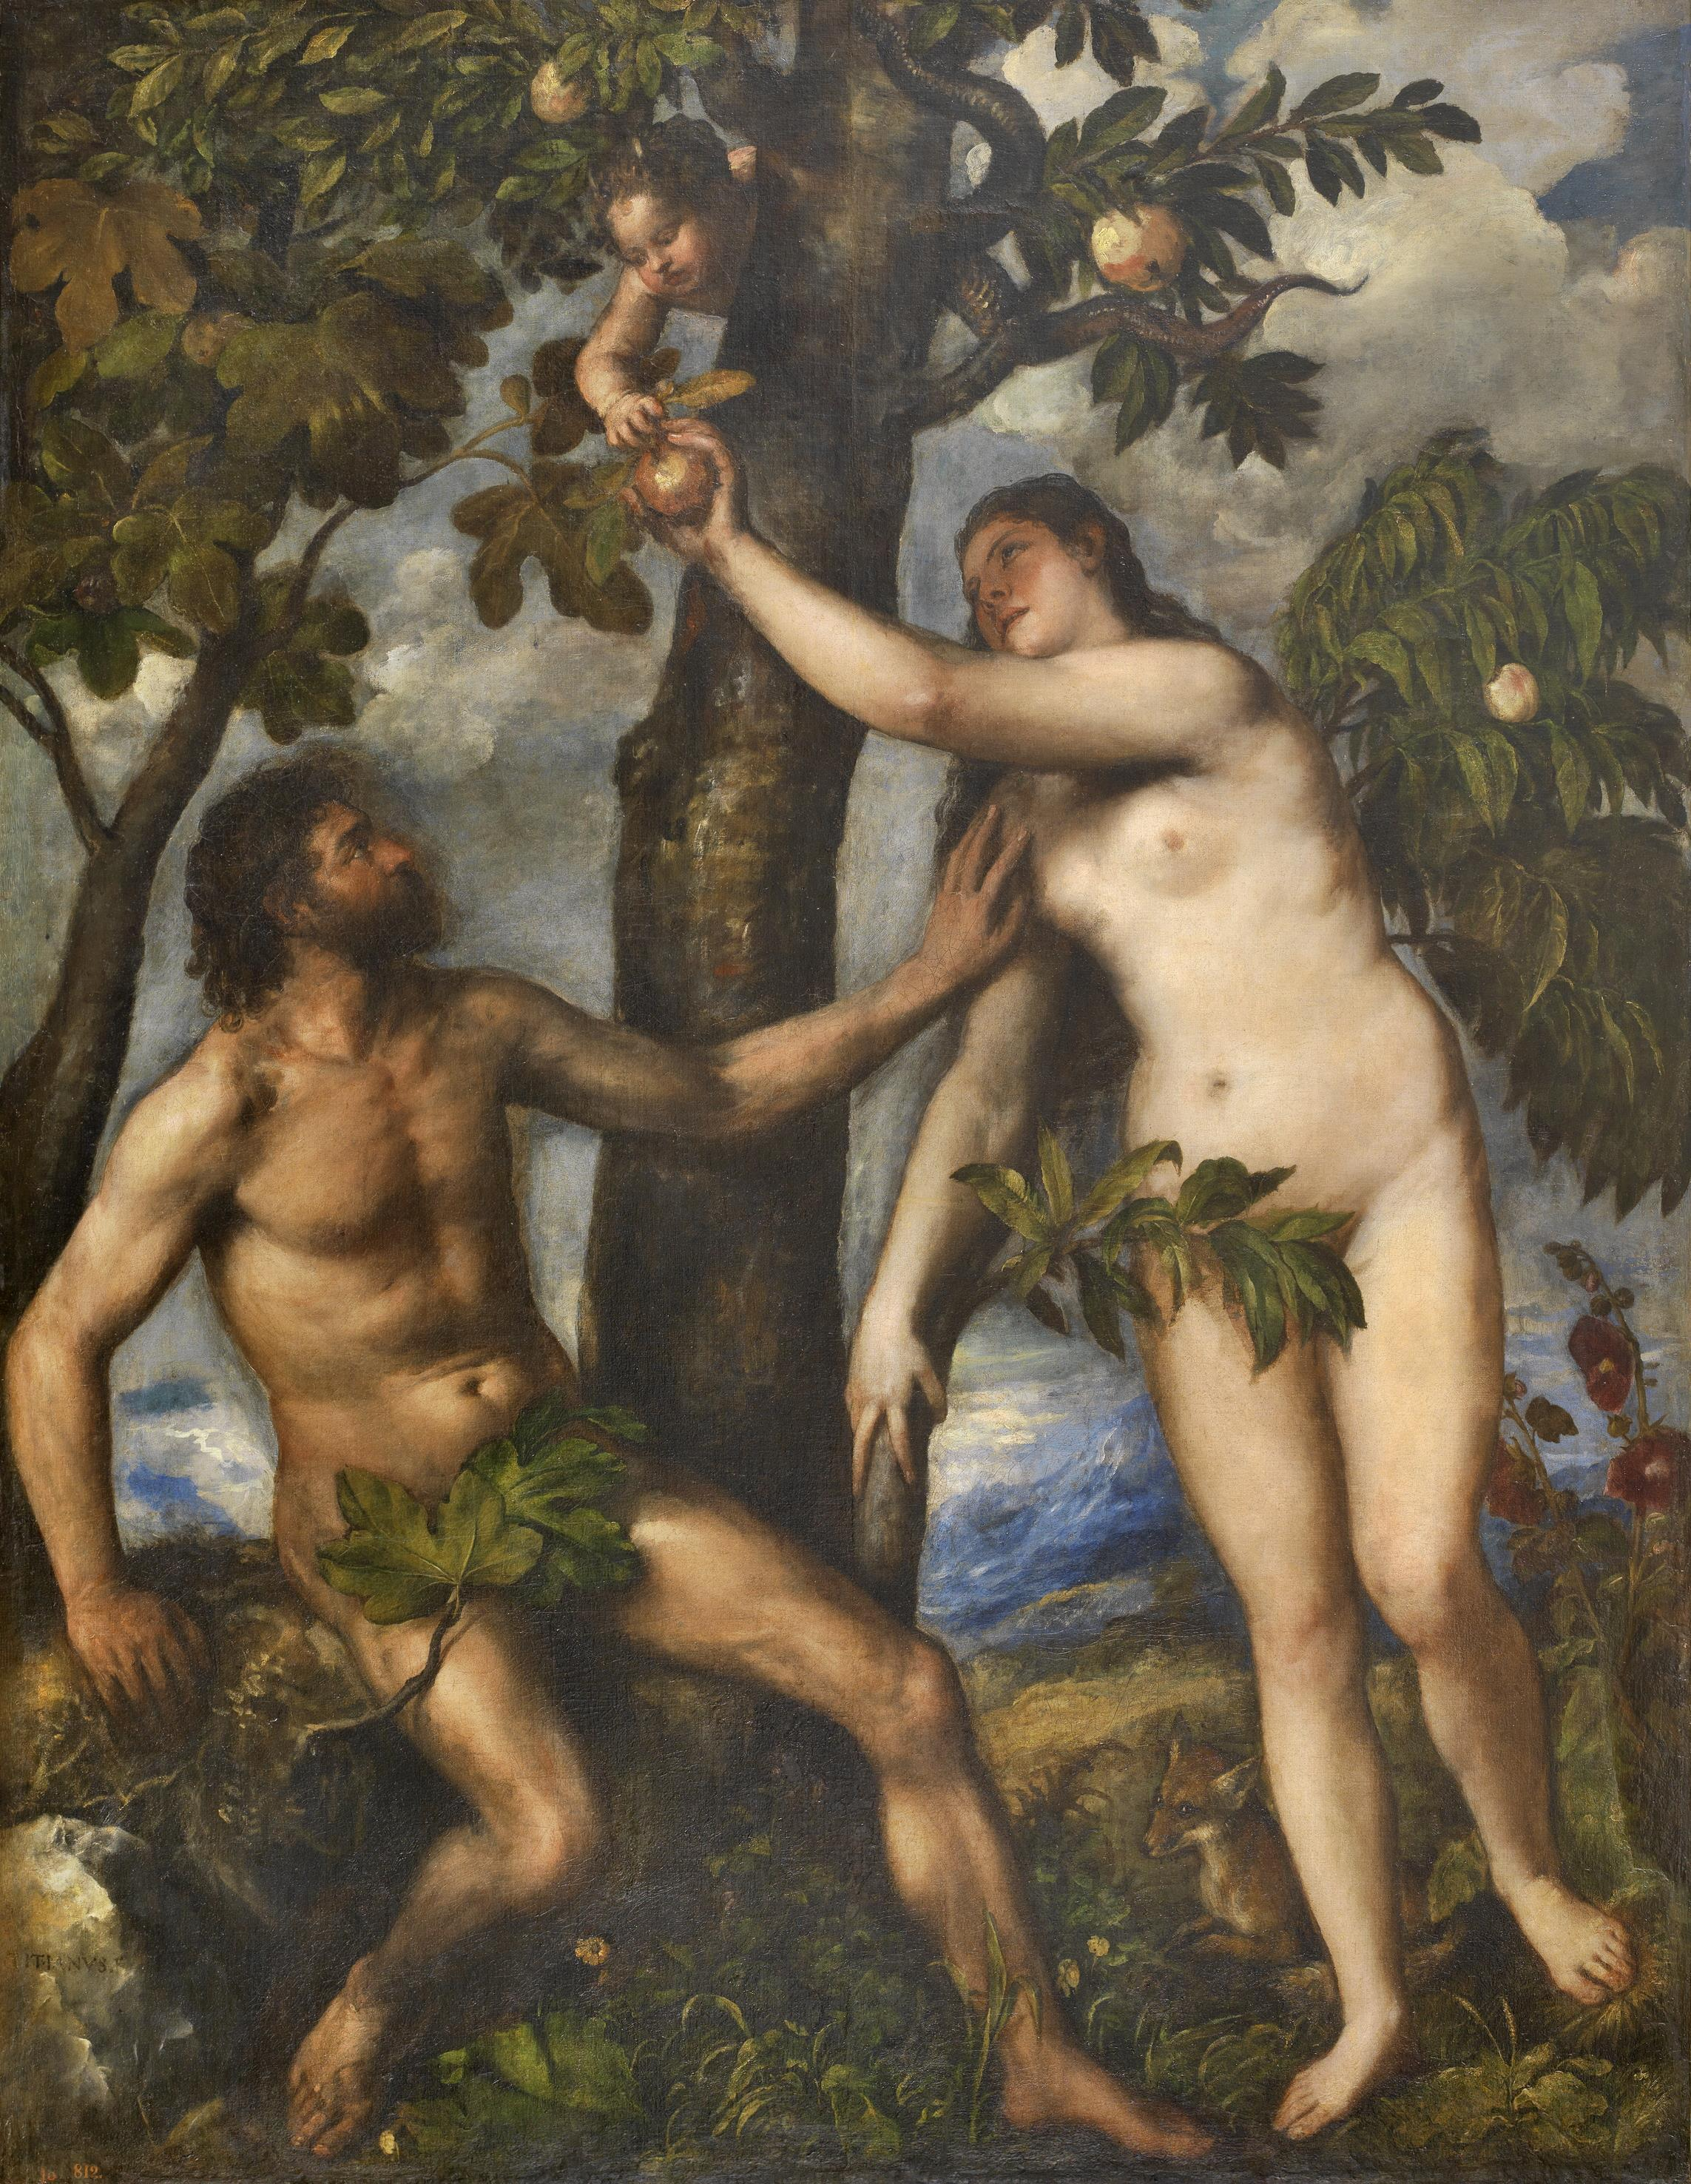 Adam and eve in garden of eden studying genesis chapter 2 7